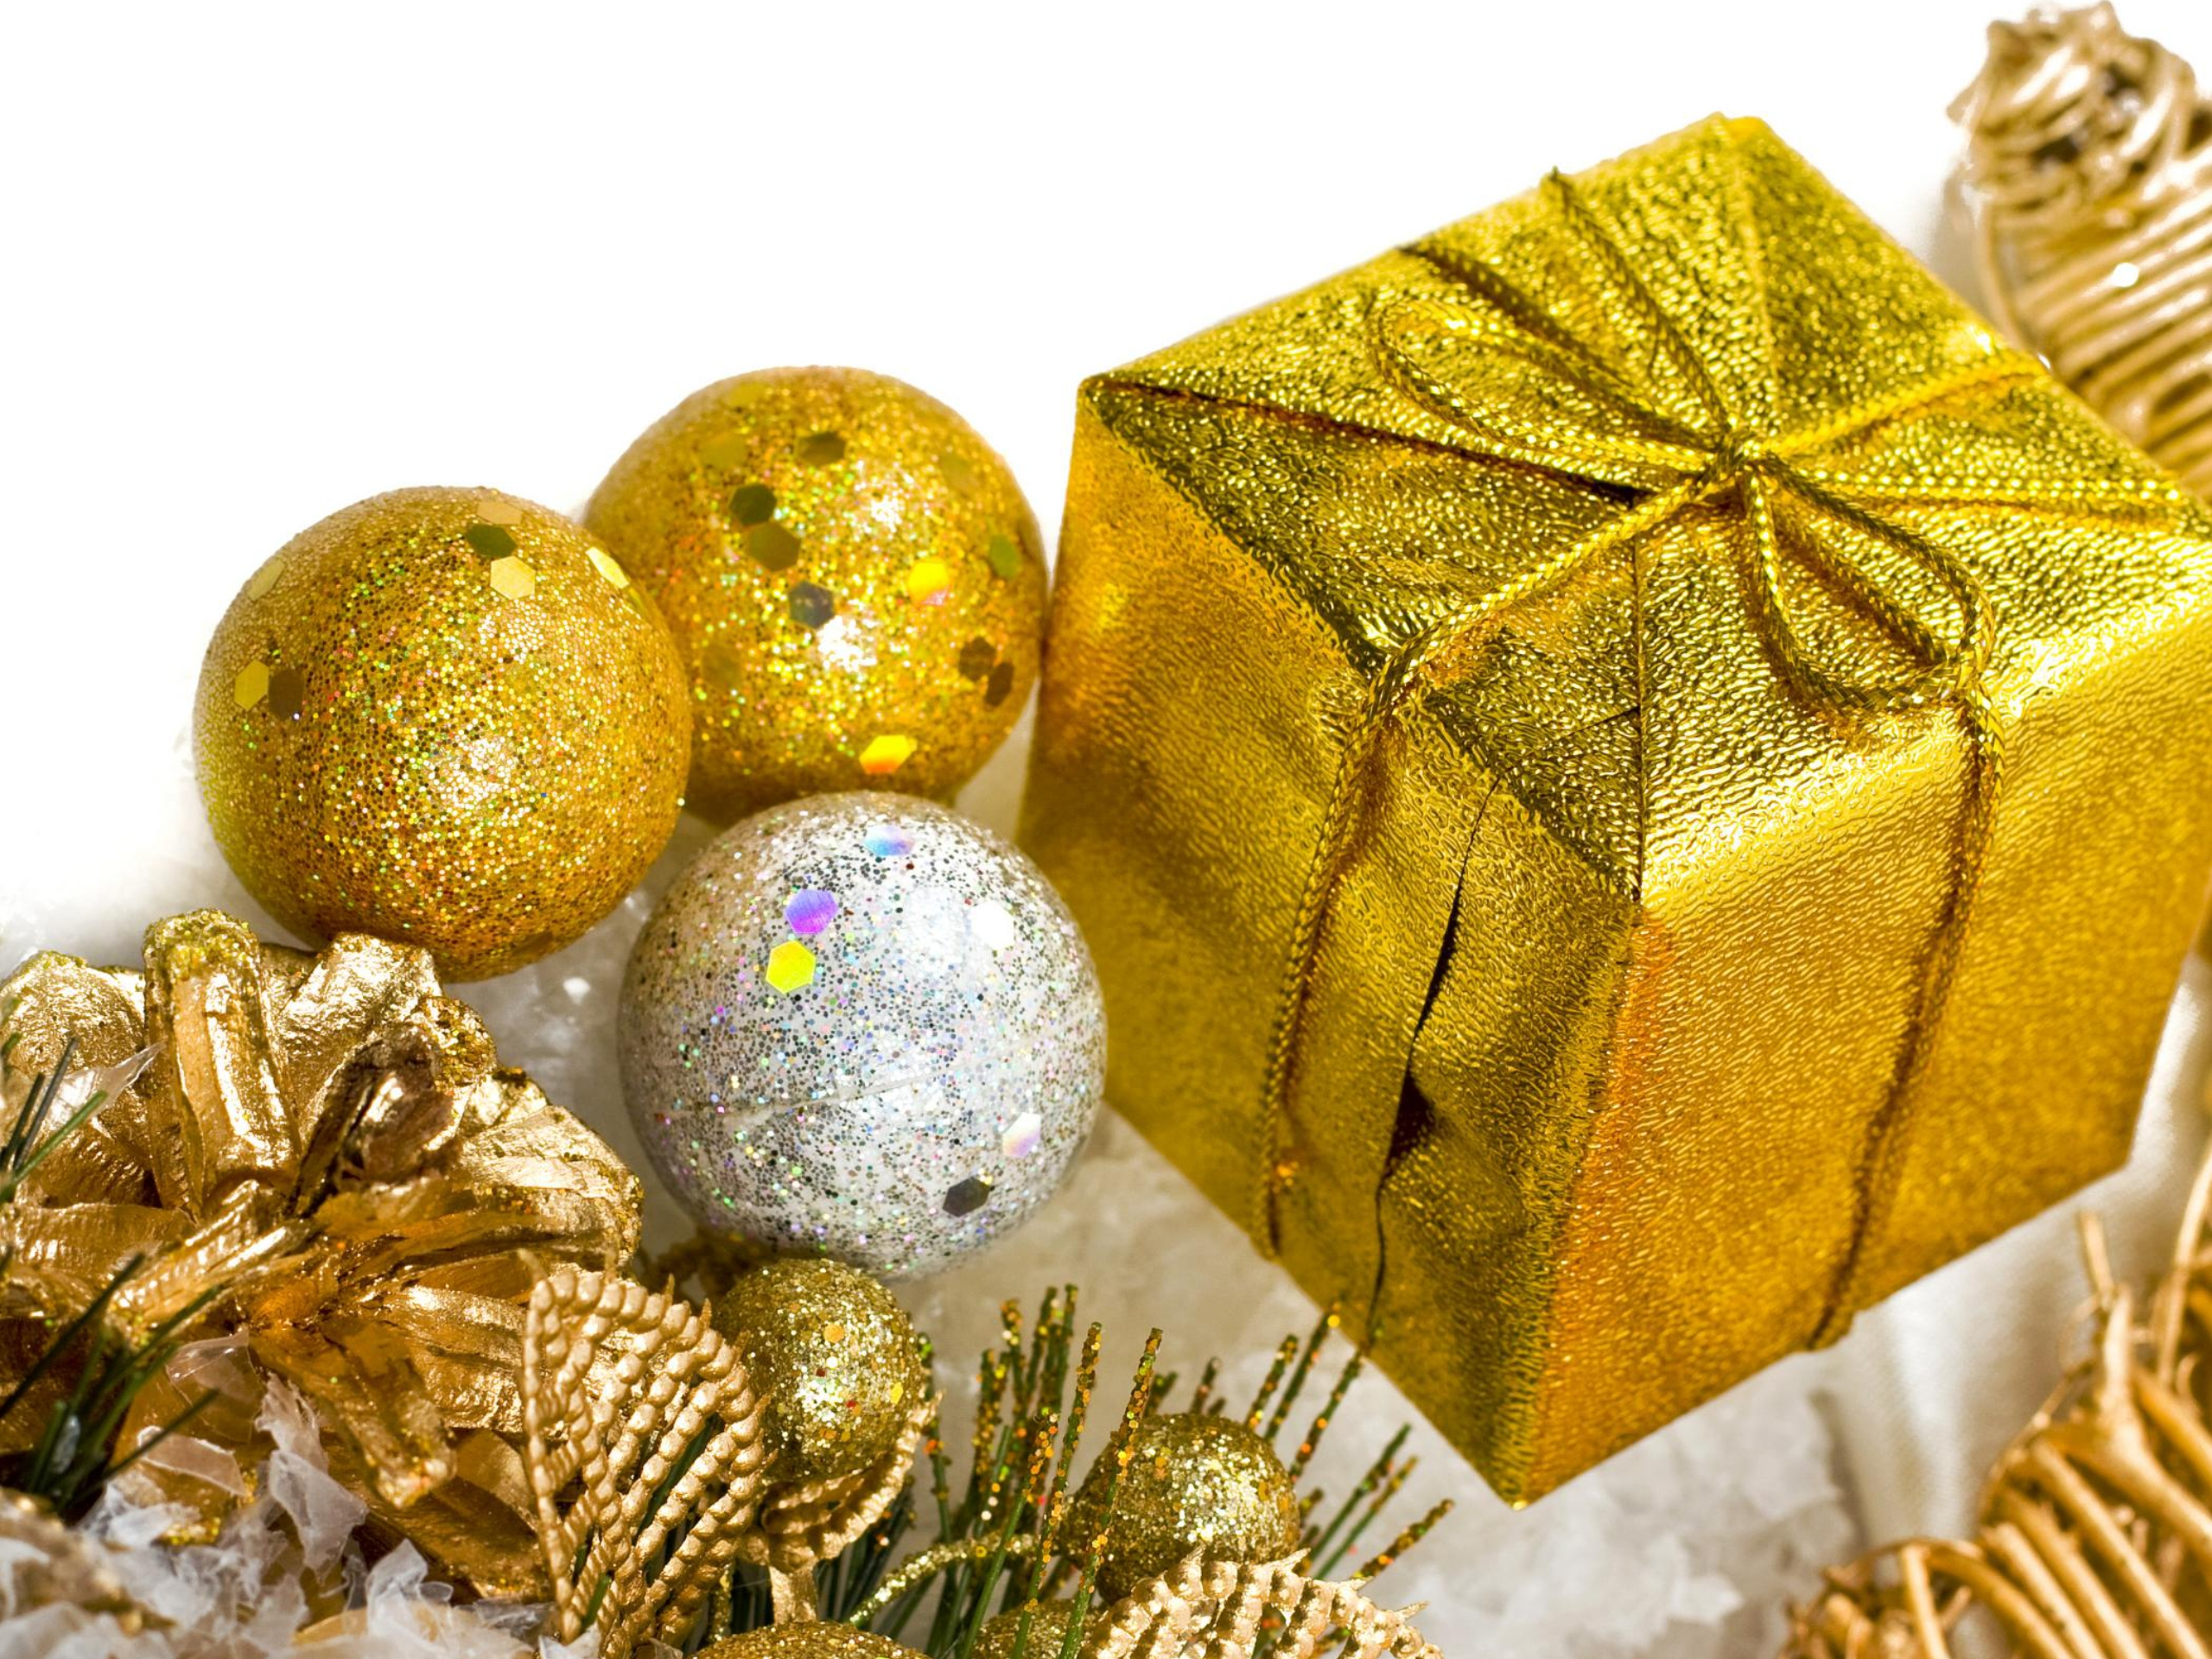 2560x1440 Christmas Golden Decorations Youtube Channel Cover